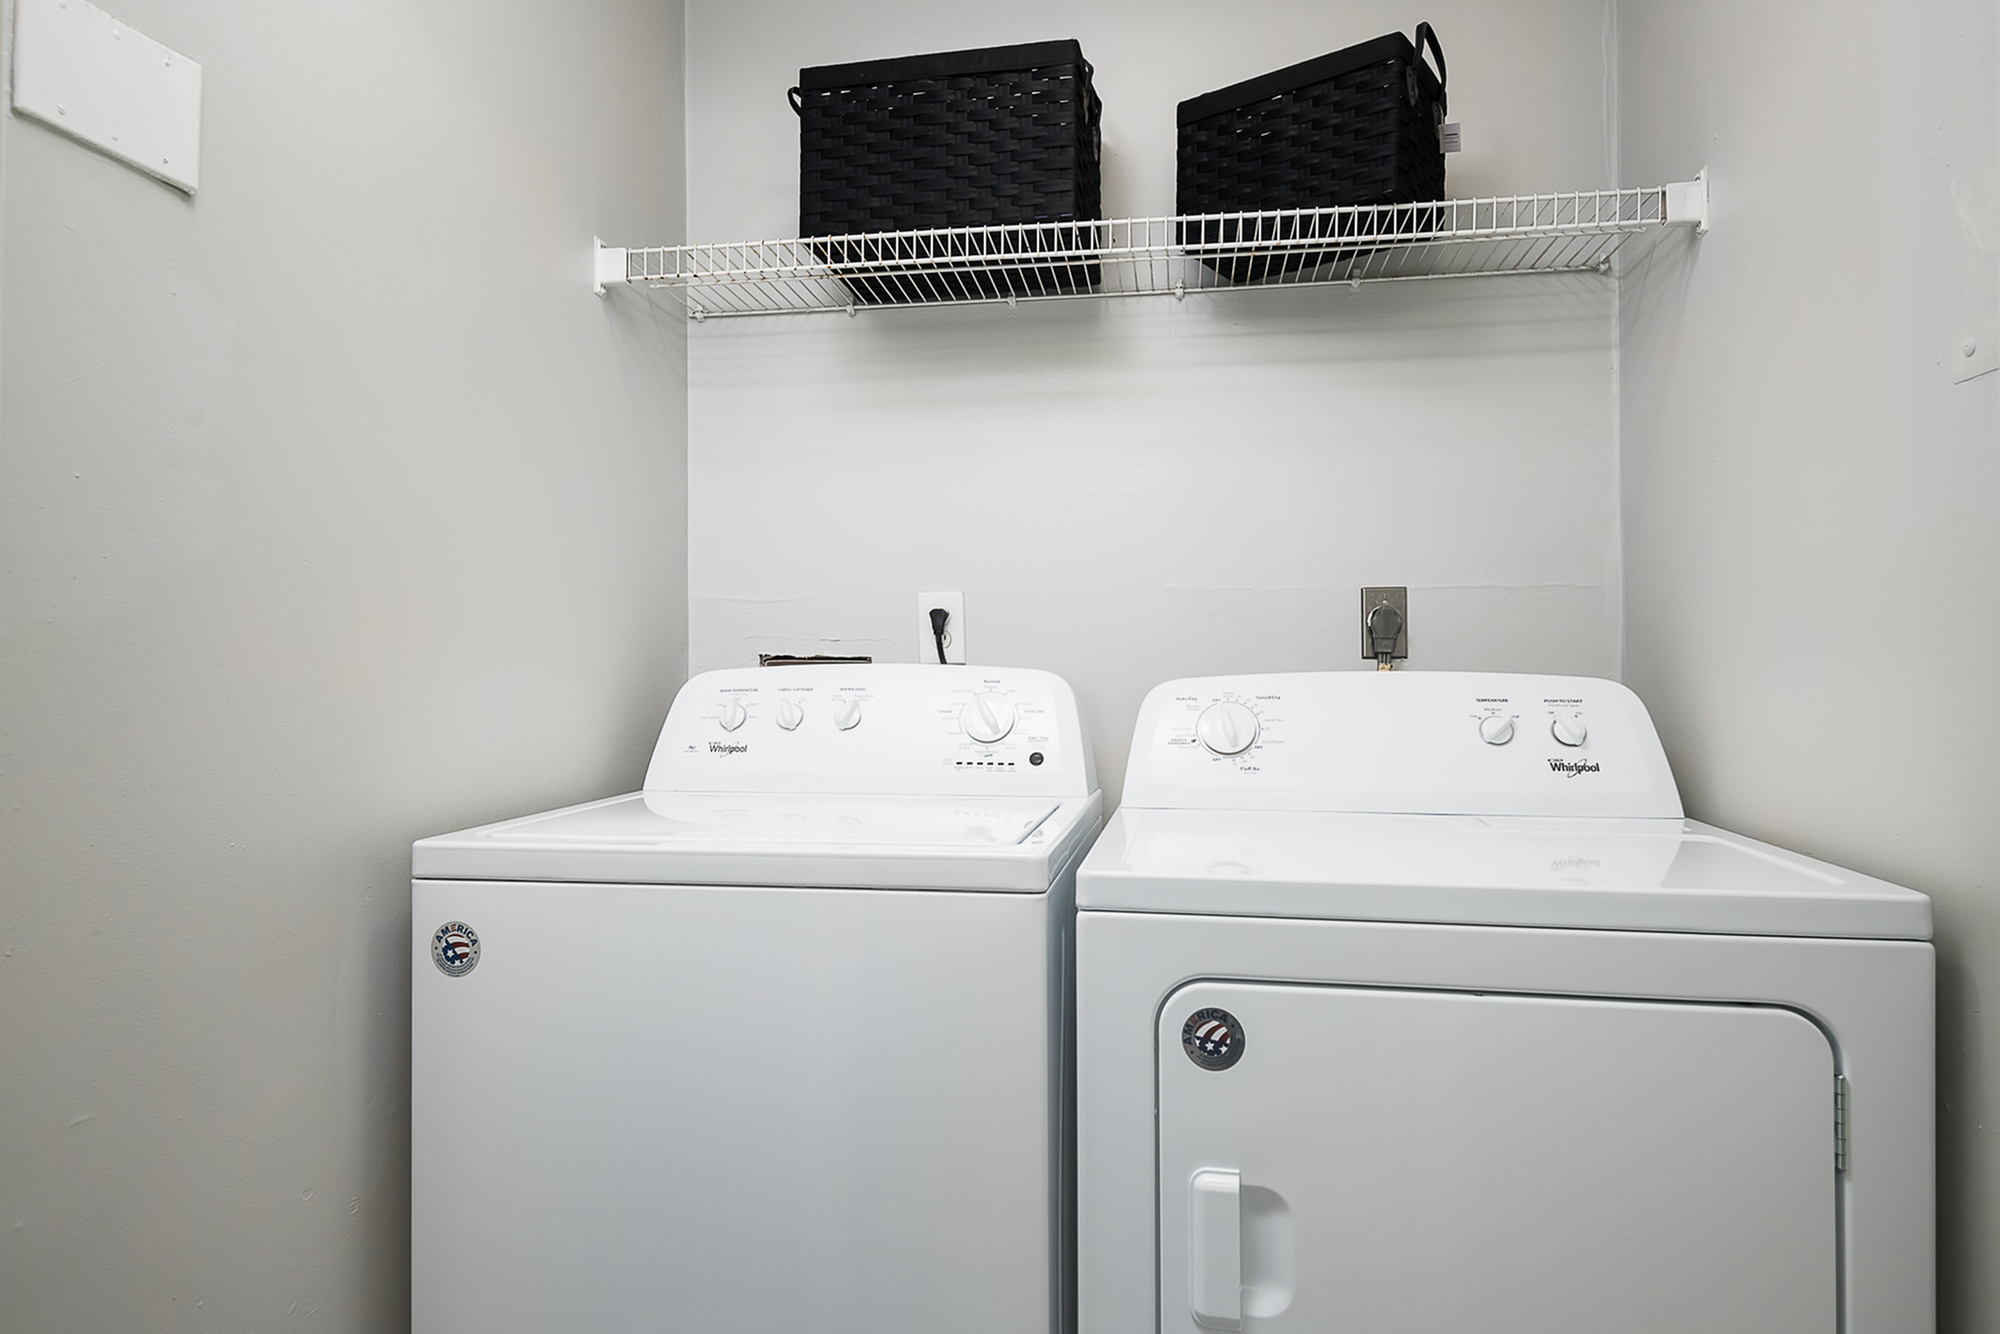 Washer/dryer in apartment at The Mark at Lexington, off-campus housing in Lexington, KY